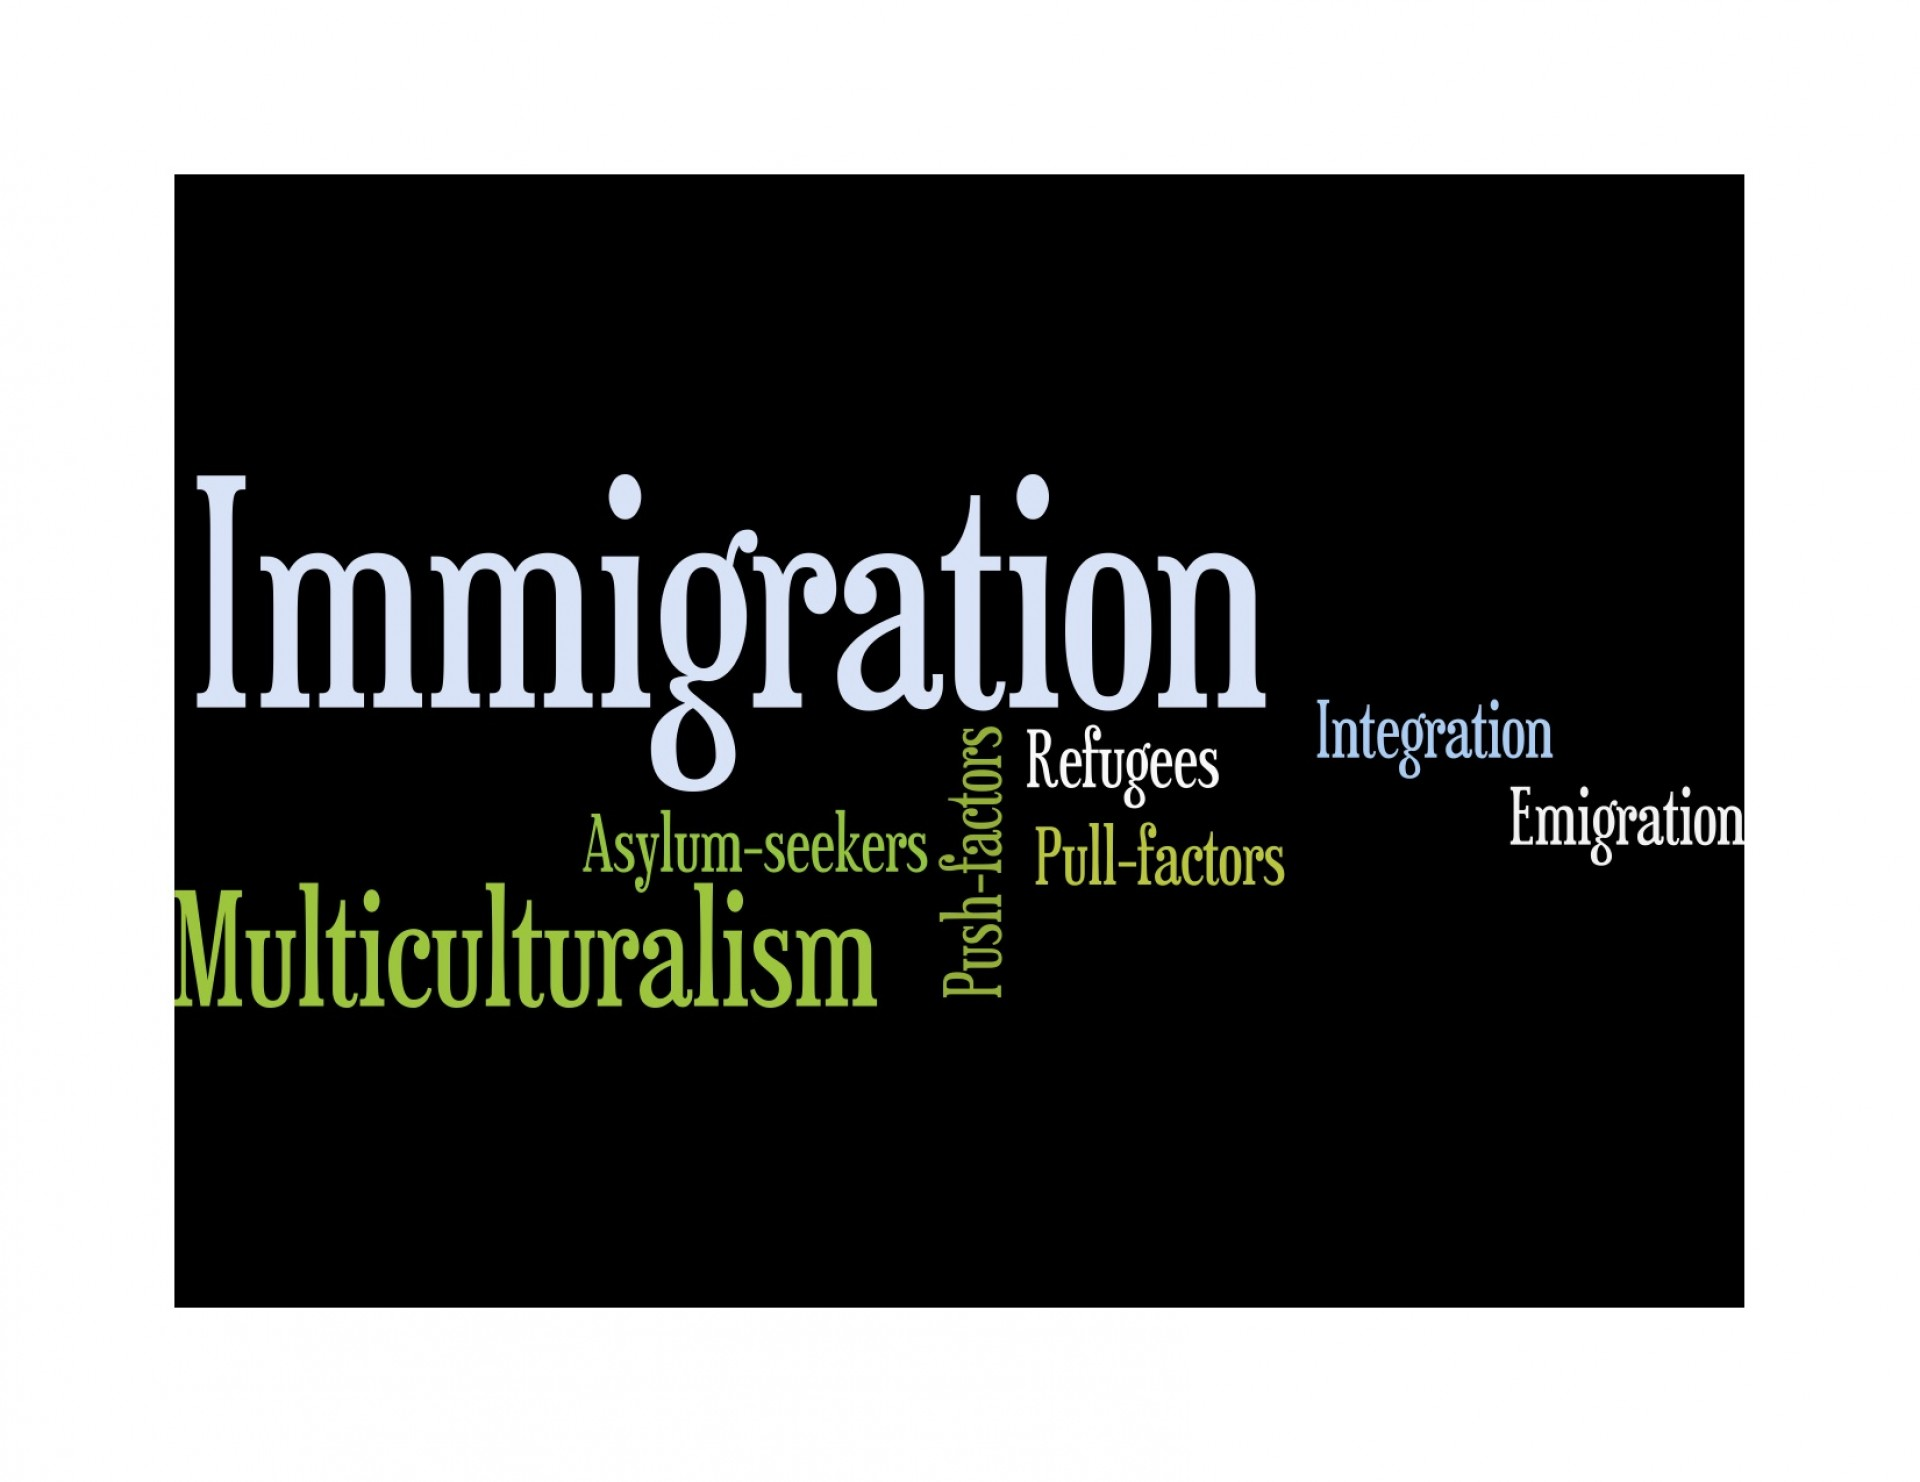 016 Immigration Essay Example Exceptional Policy Examples Reform Questions Prompt 1920